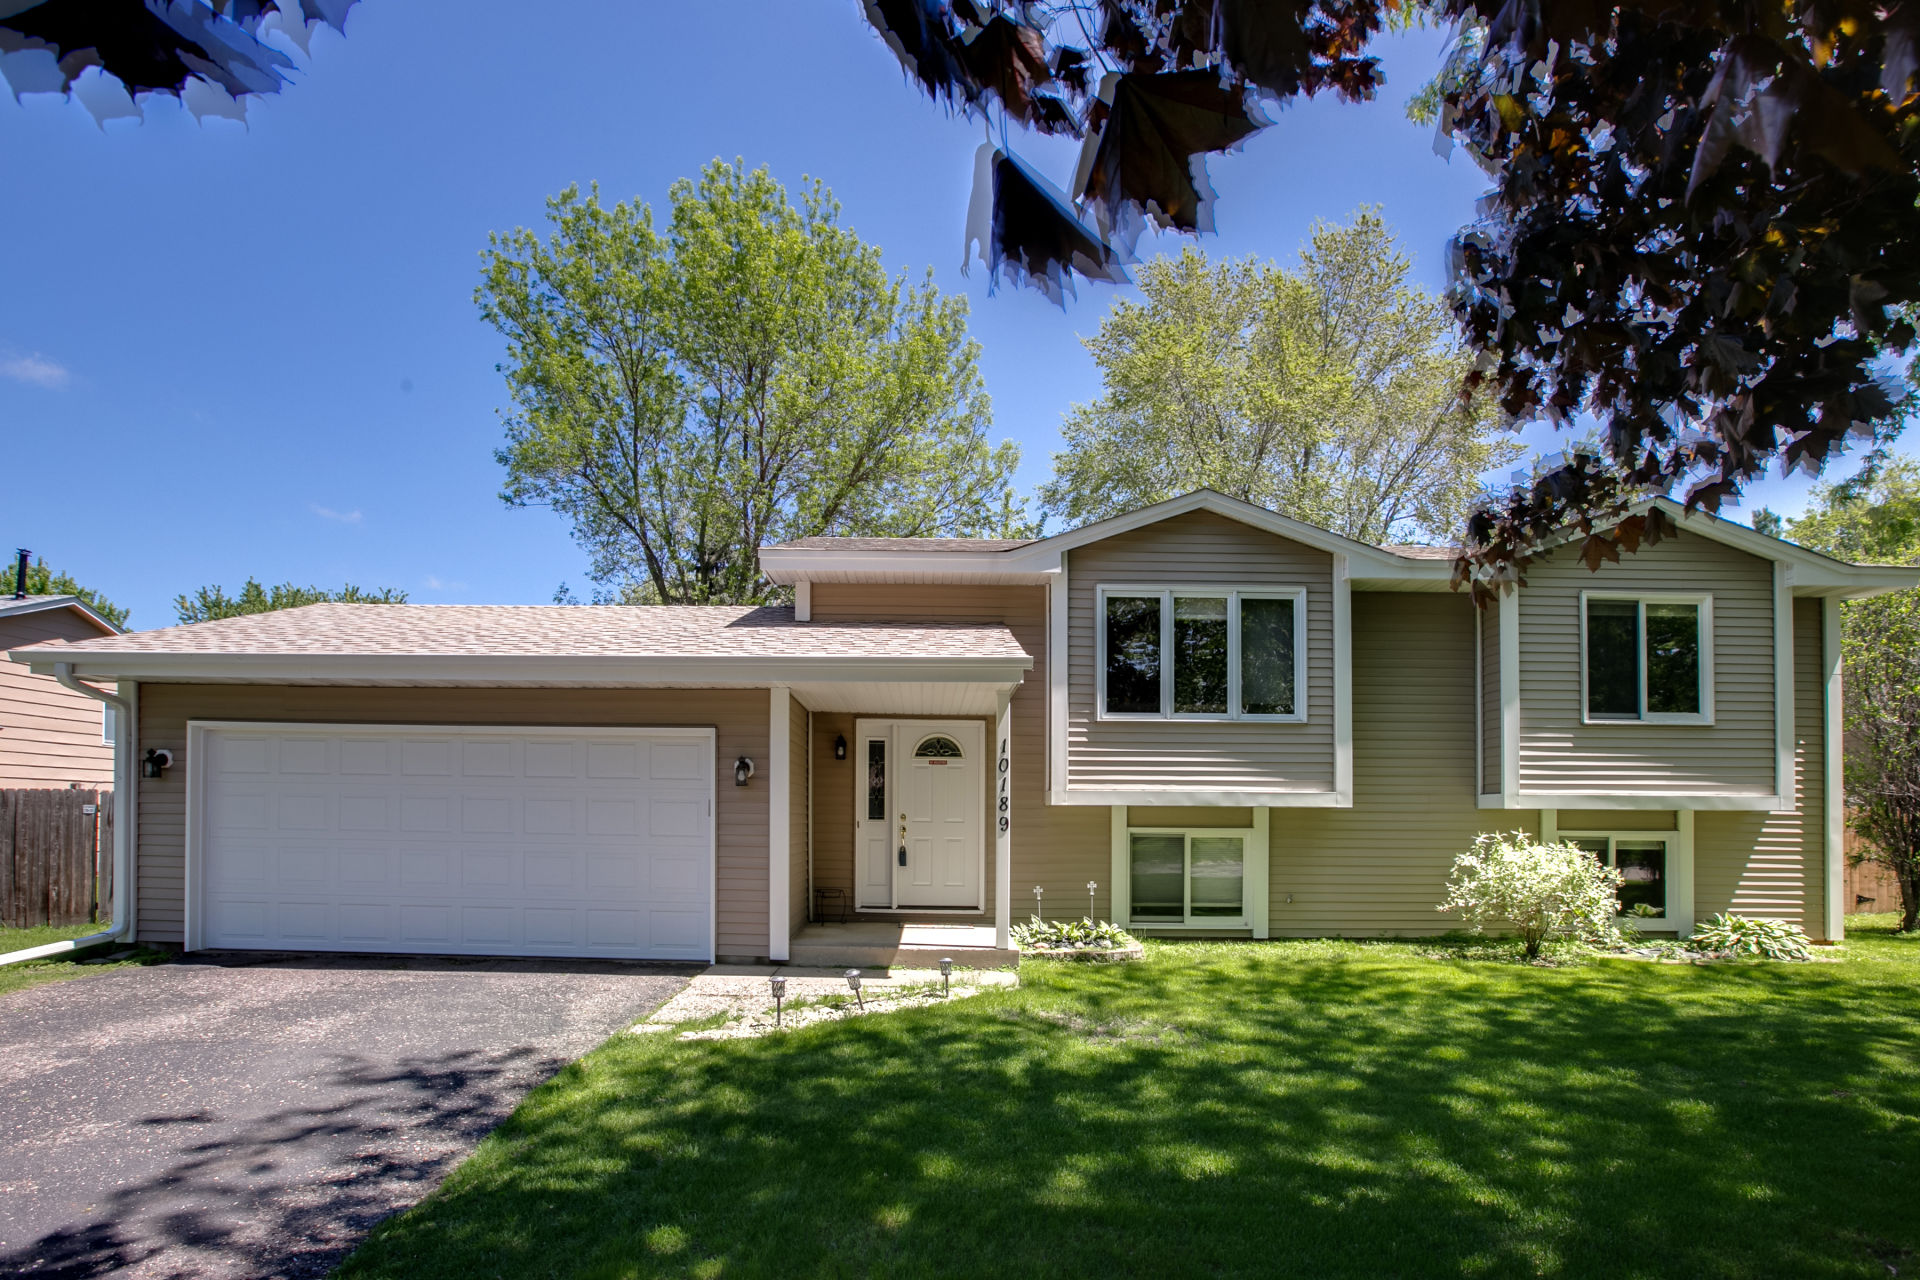 Home For Sale- 10189 Ghia St. NE, Circle Pines, MN